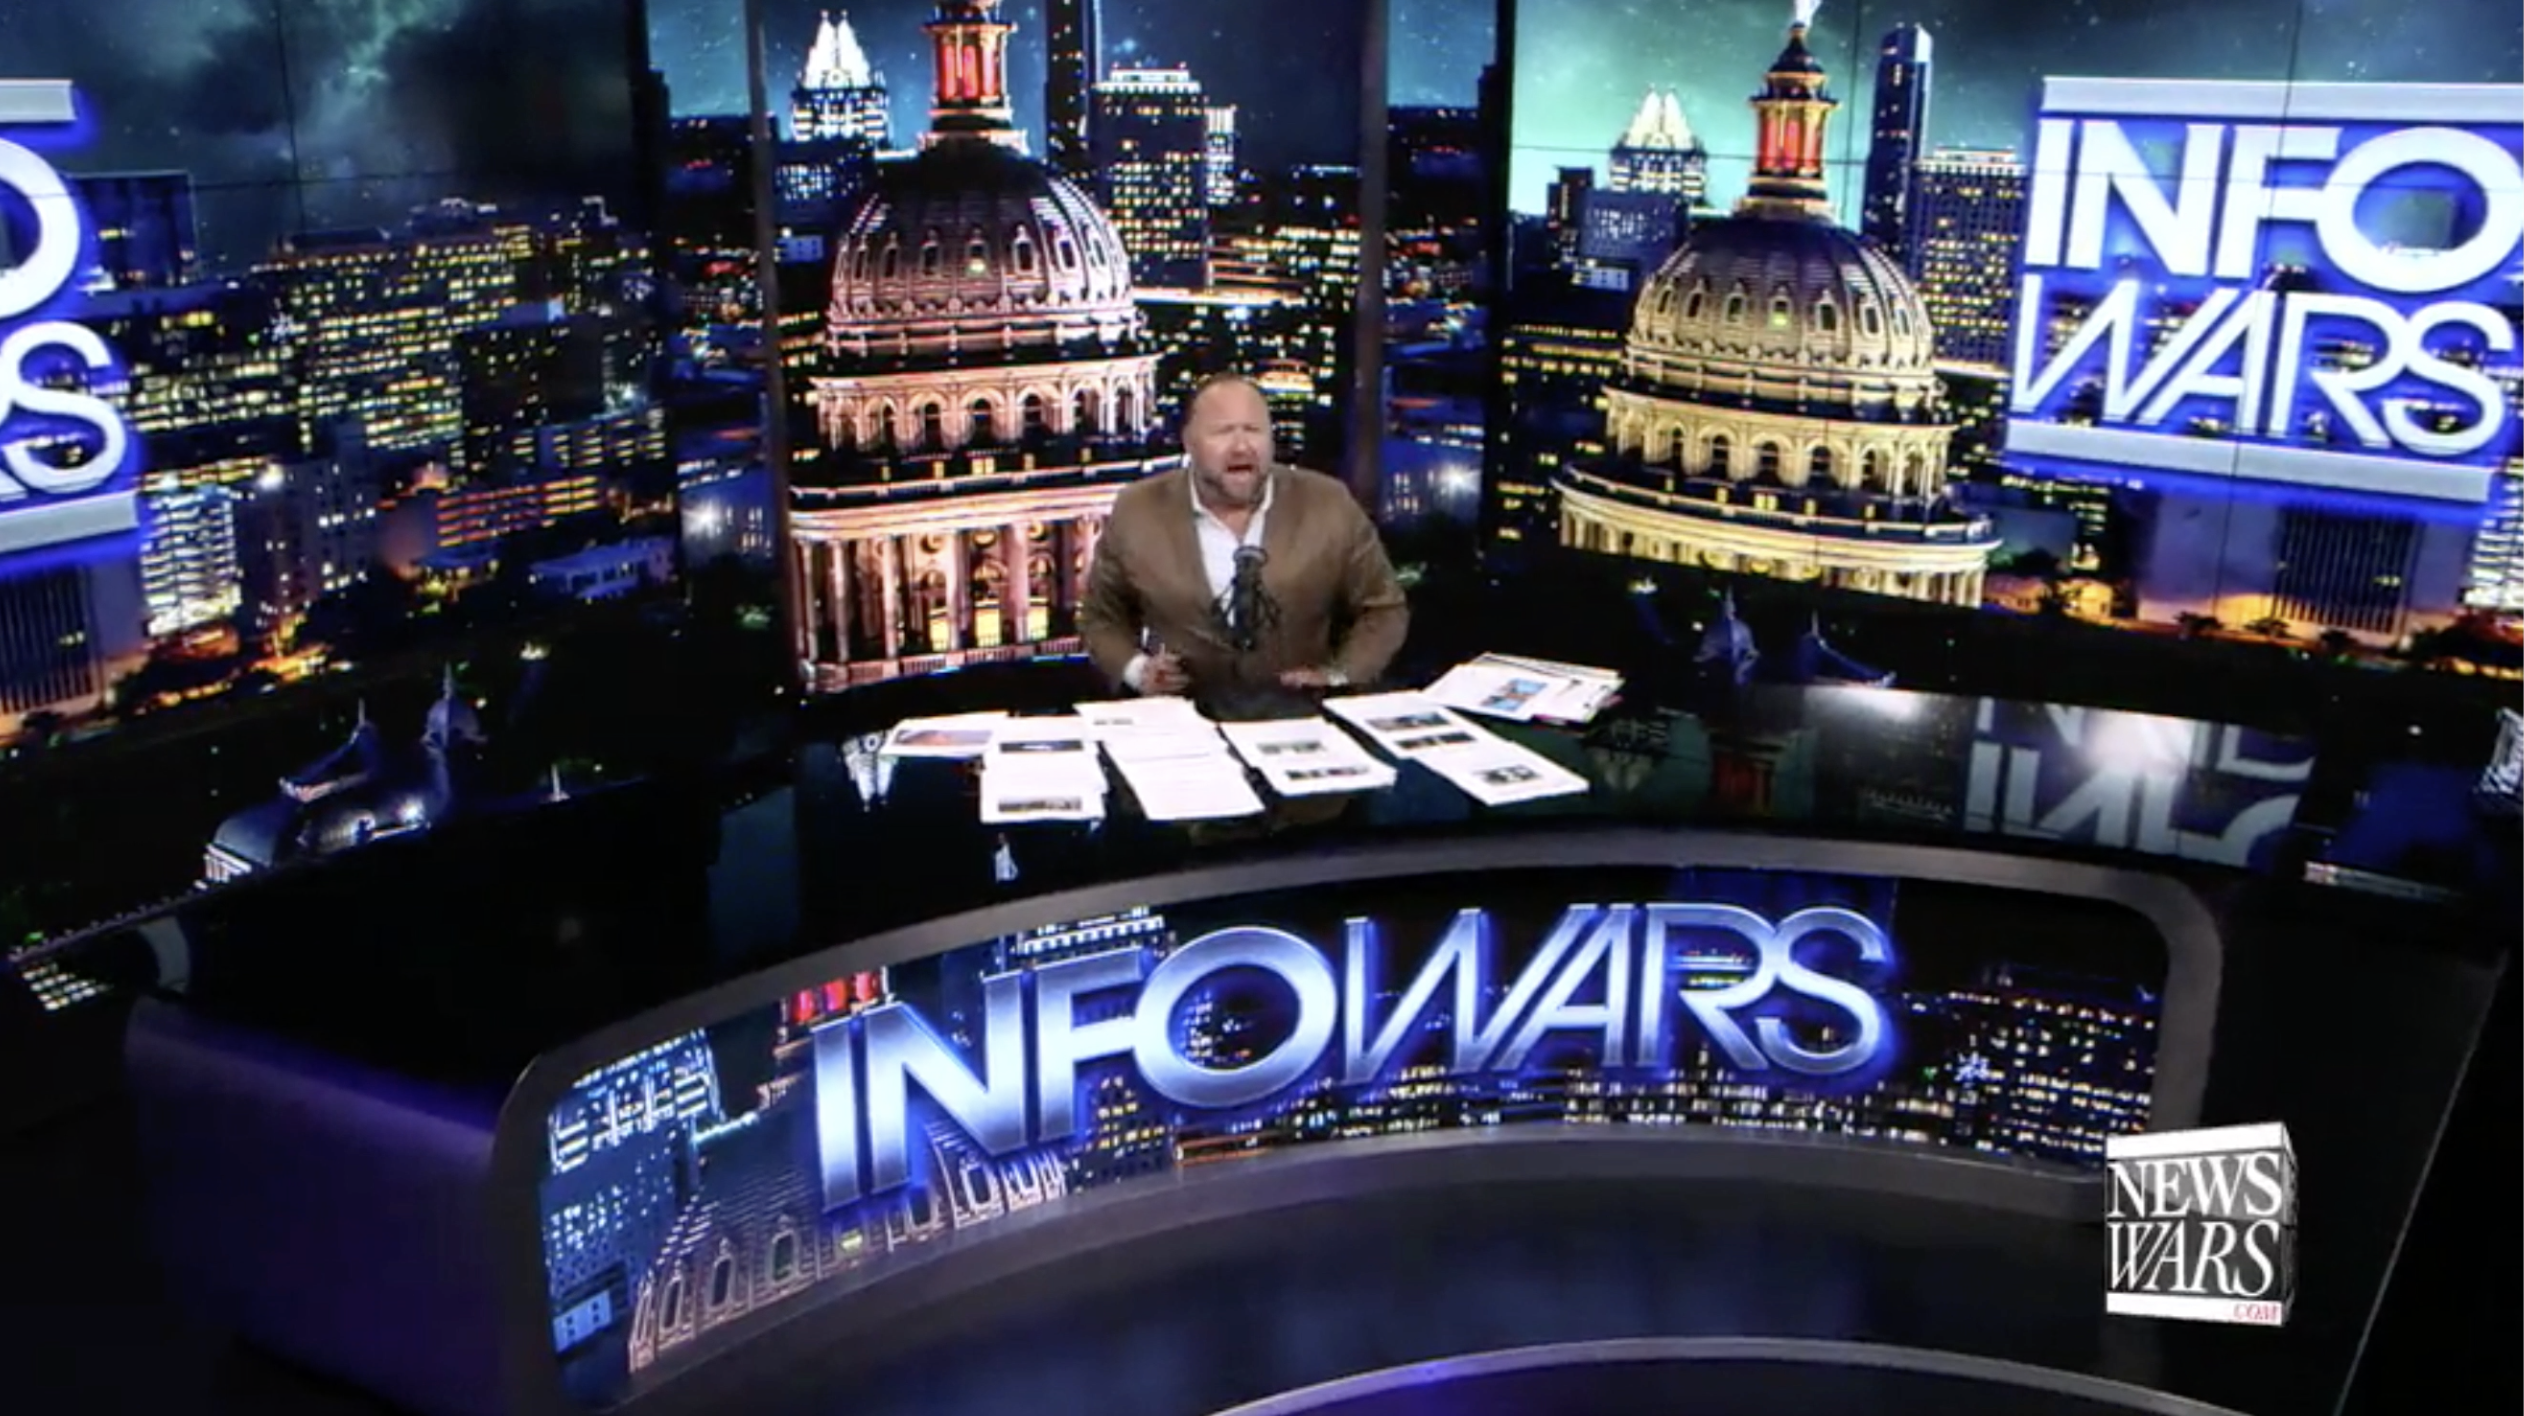 Alex Jones Infowars Studio EXZM September 1st 2020